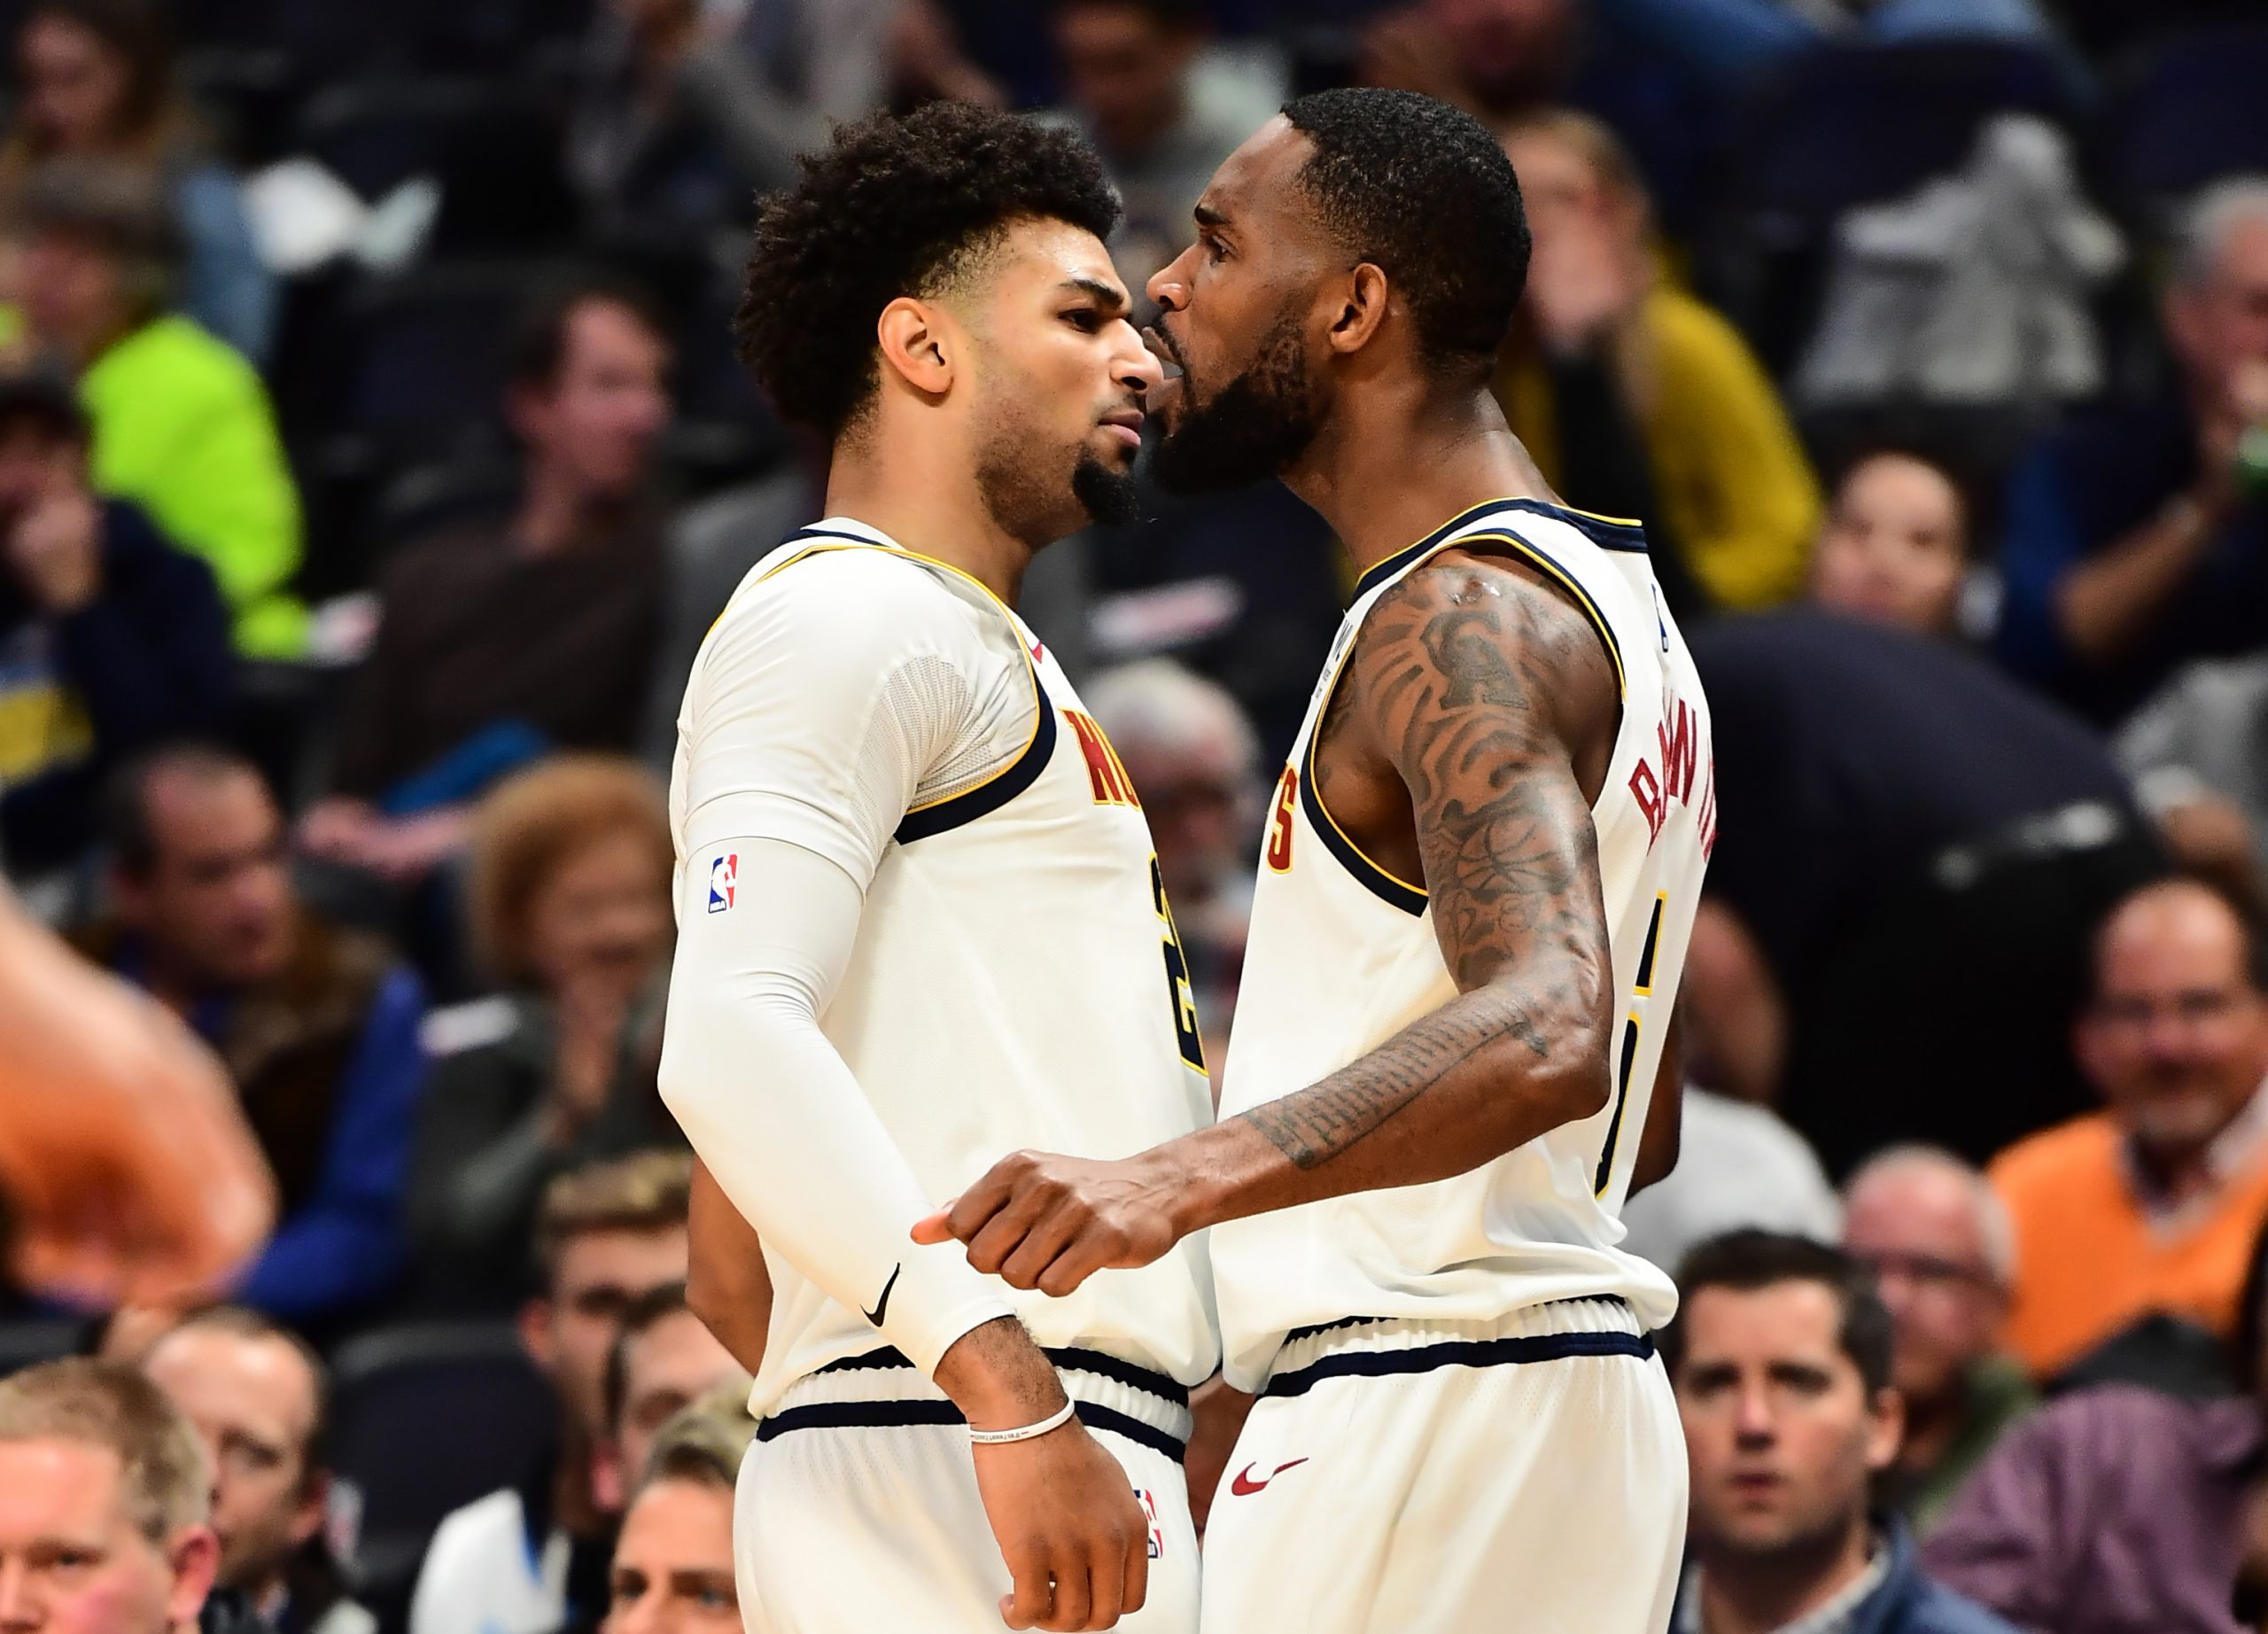 Nov 5, 2019; Denver, CO, USA; Denver Nuggets forward Will Barton (5) celebrates his basket with guard Jamal Murray (27) in the first quarter against the Miami Heat at the Pepsi Center. Mandatory Credit: Ron Chenoy-USA TODAY Sports